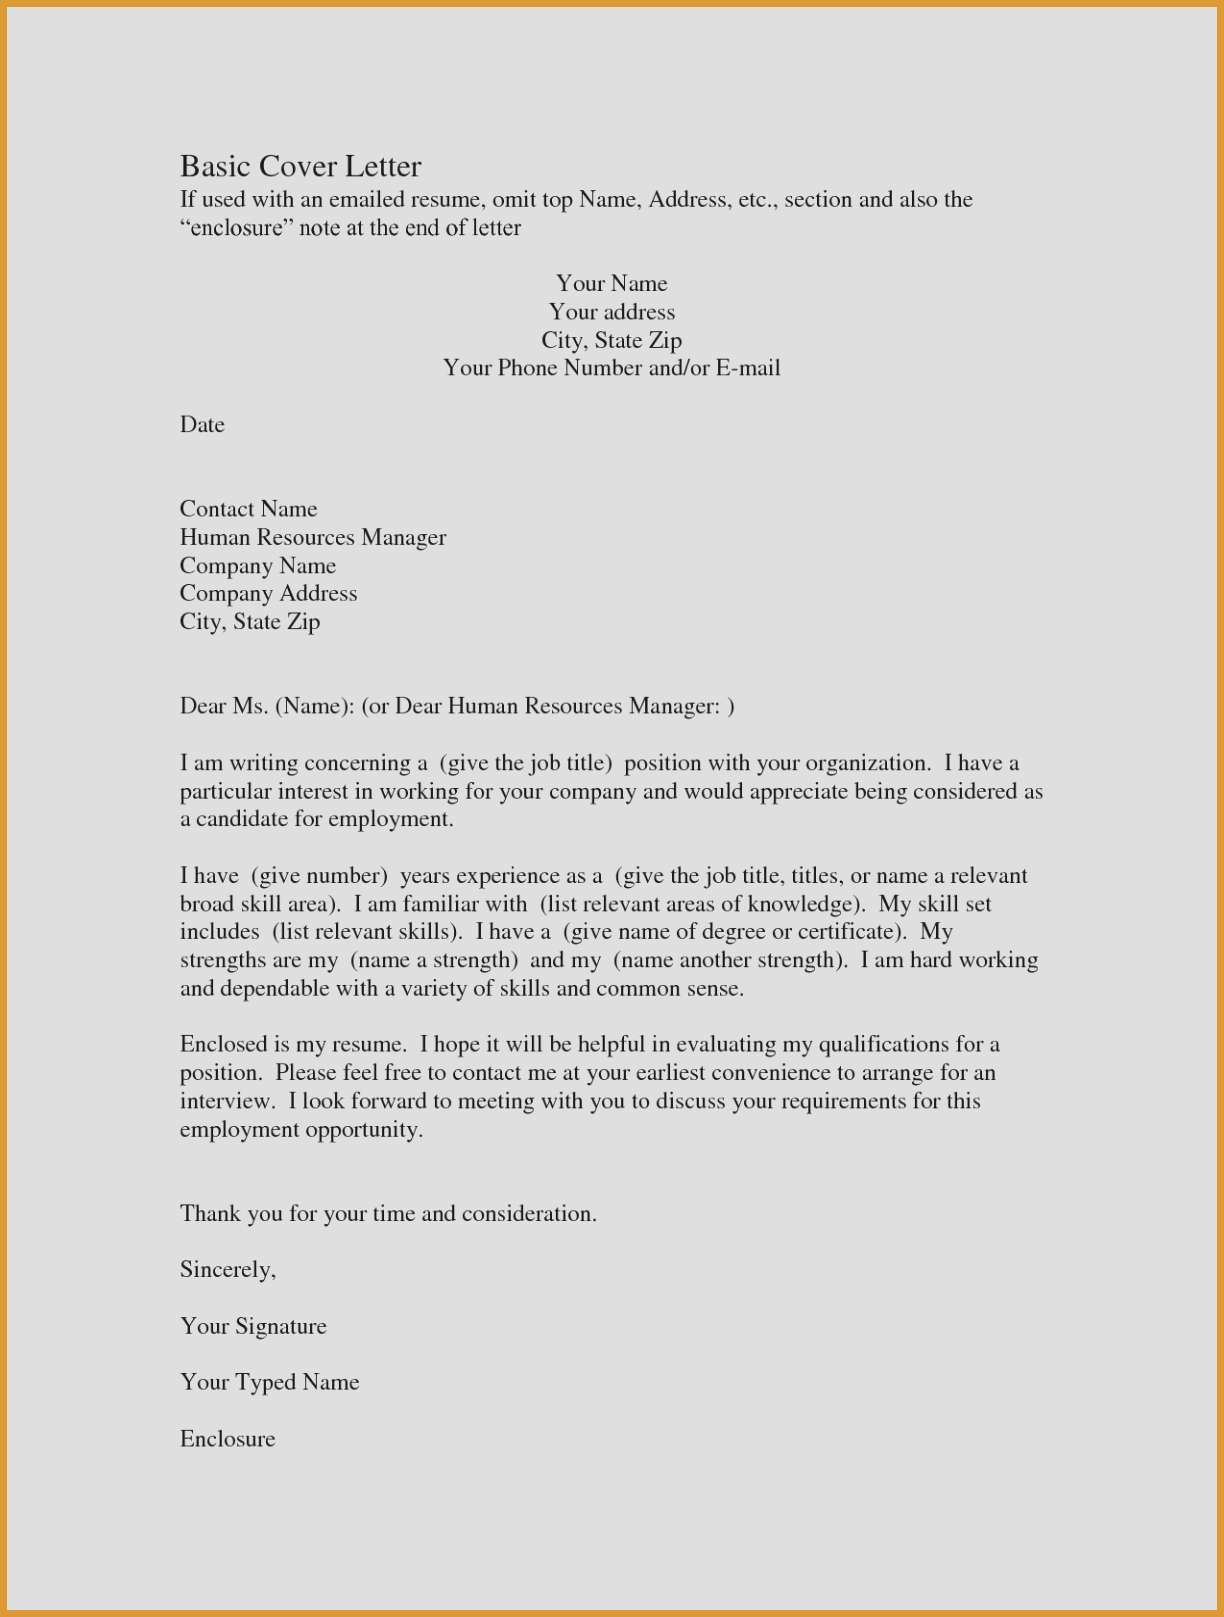 Quick Easy Cover Letter Template Examples | Letter Templates